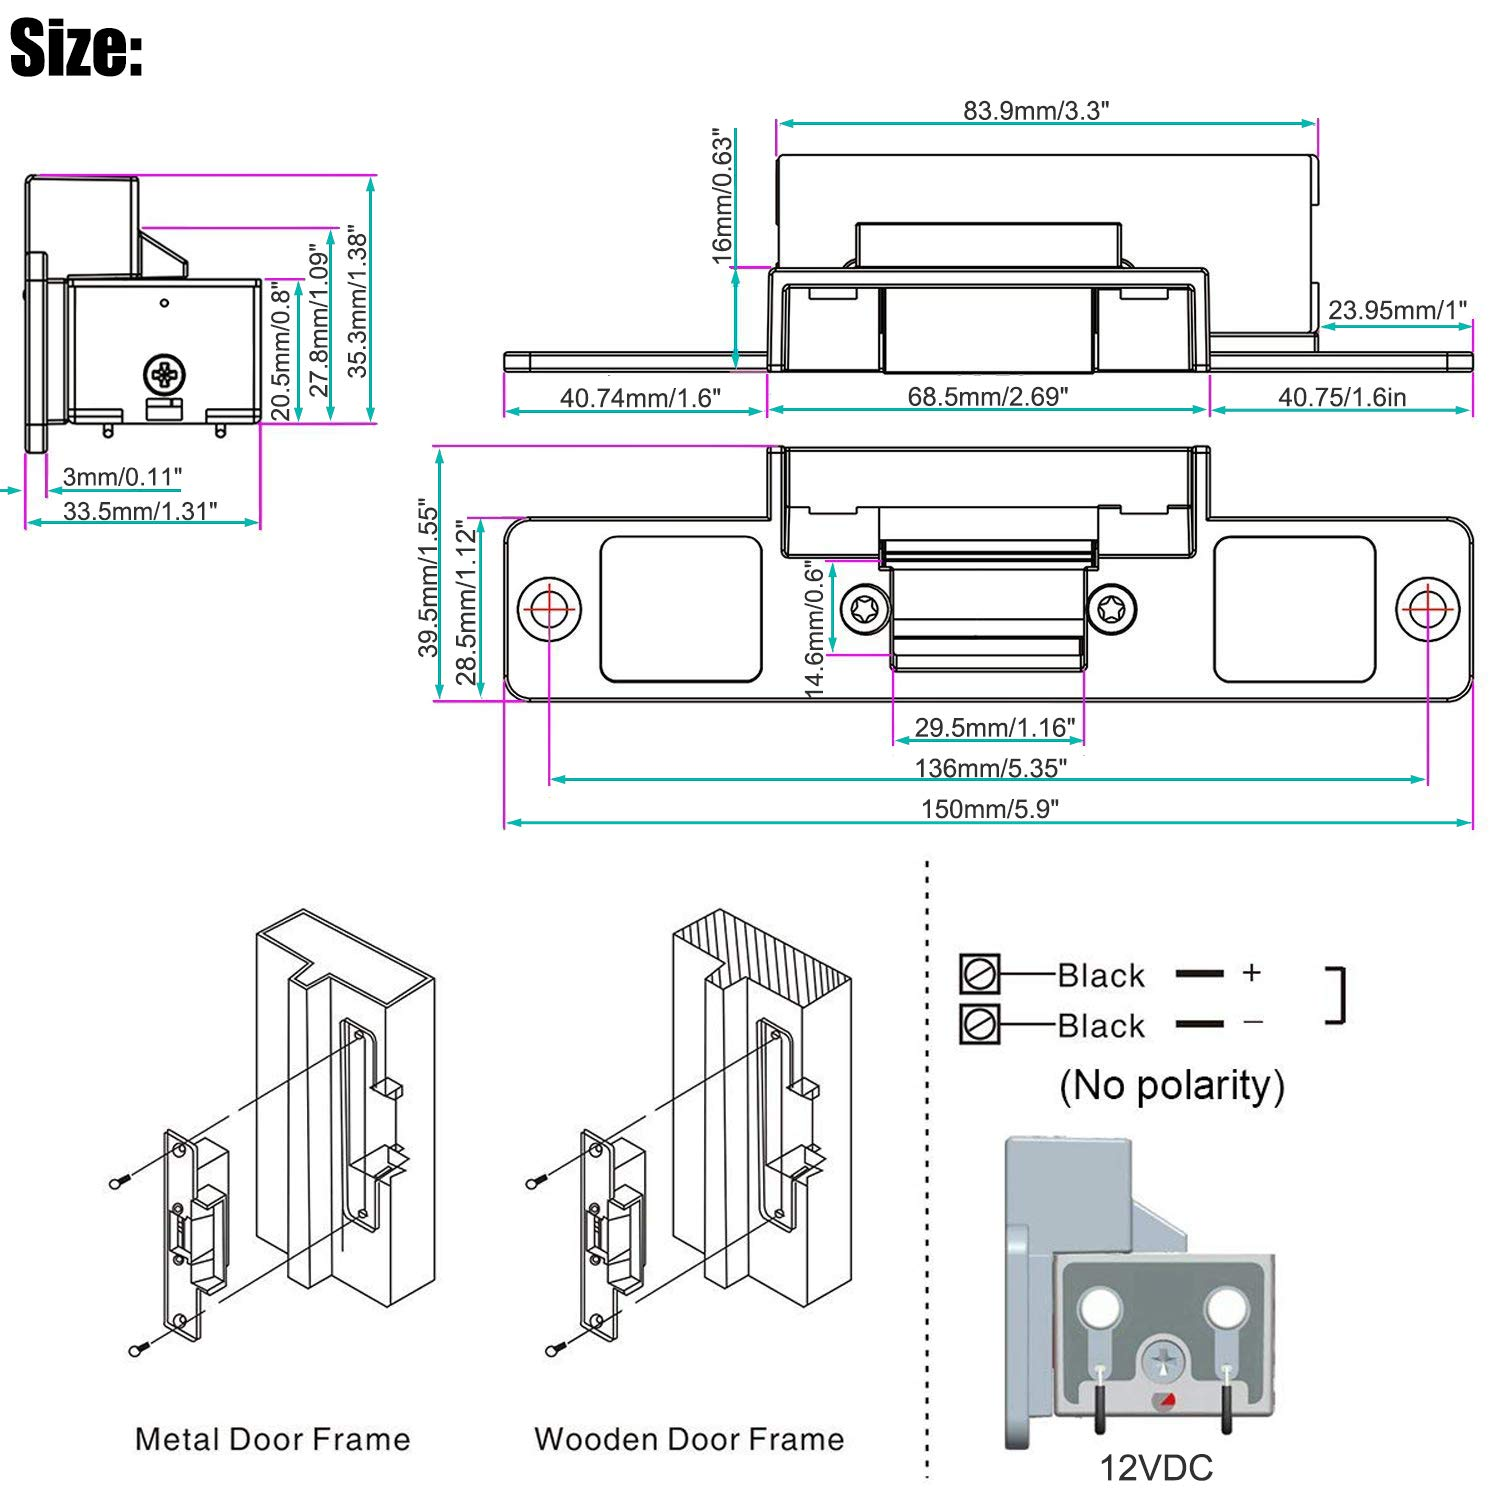 Uhppote Electric Strike Fail Secure Mode Lock A Part For Access About Electrical Home Improvements Wiring Diagrams And Blueprints Control Wood Metal Door